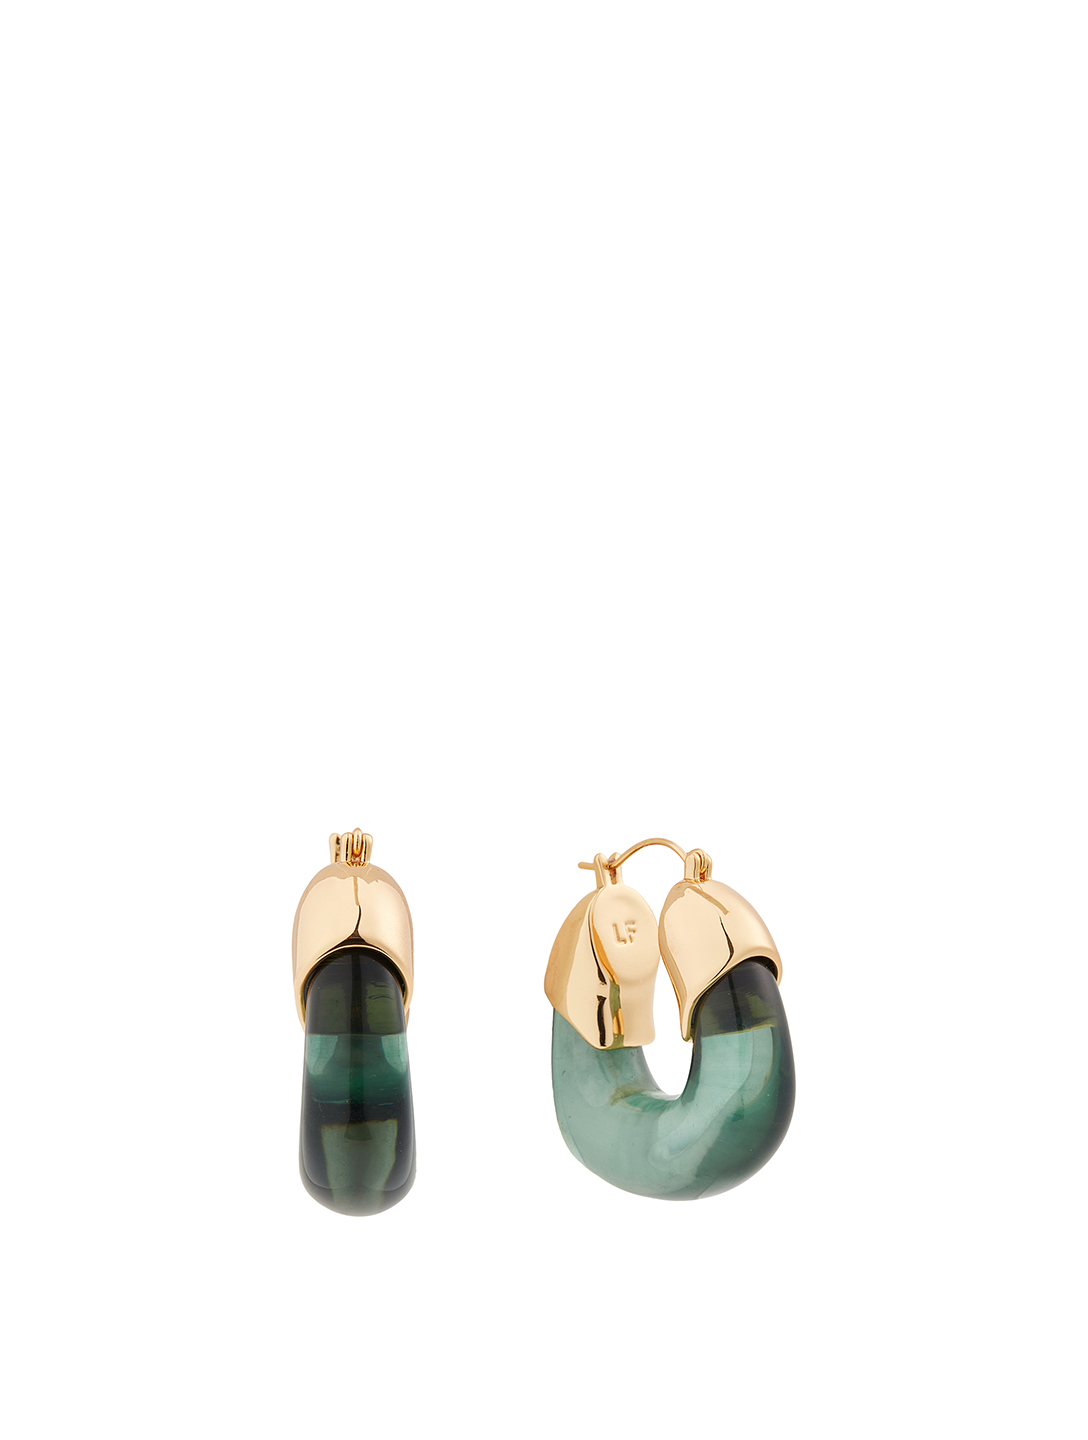 LIZZIE FORTUNATO Organic Hoop Earrings Women's Green